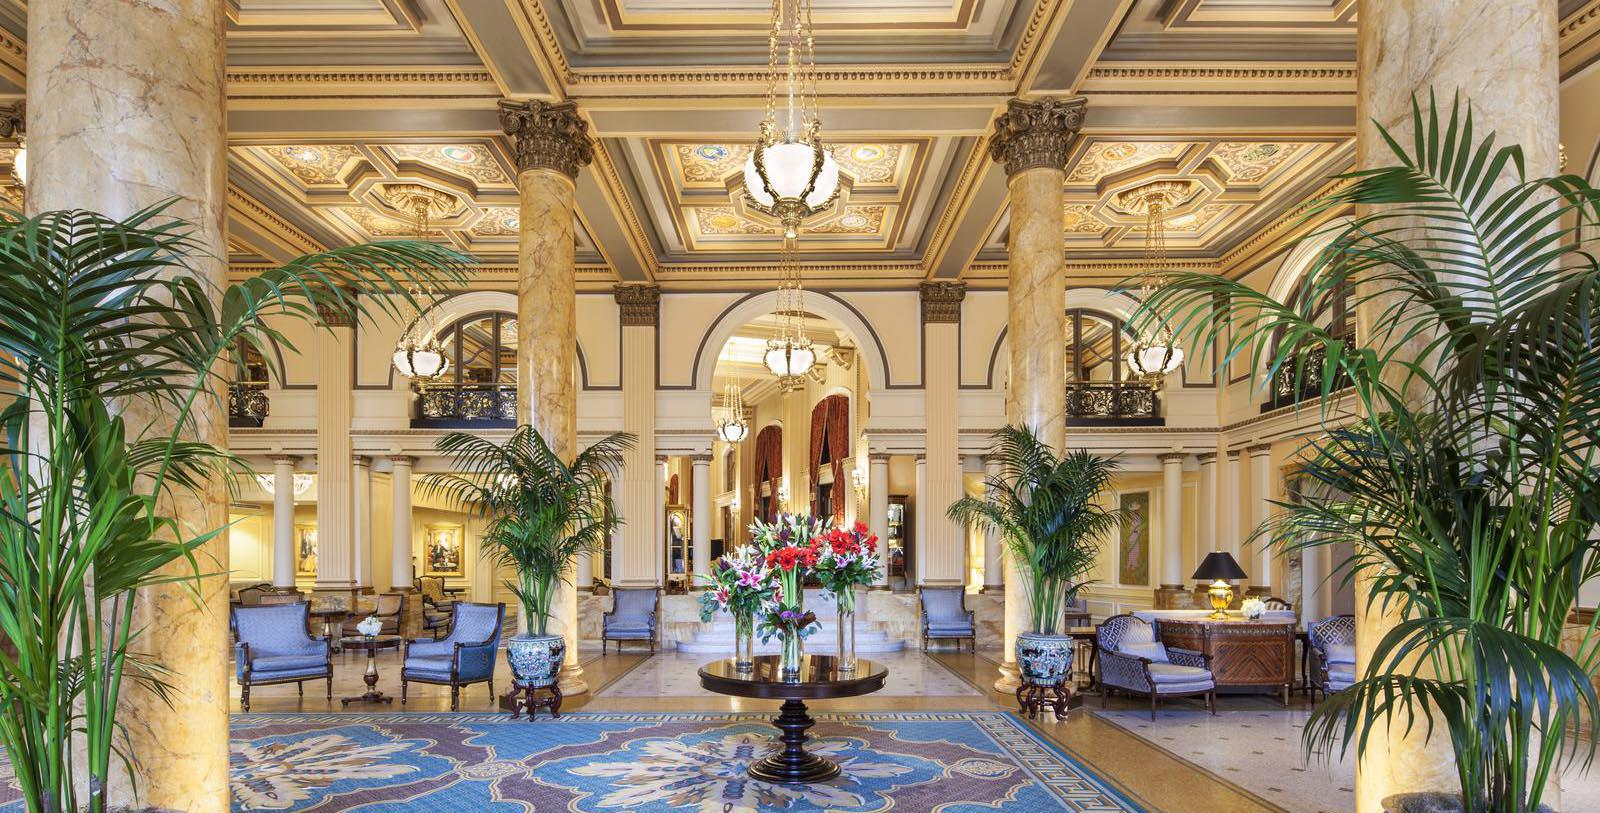 Image of hotel lobby The Willard InterContinental, Washington DC, 1847, Member of Historic Hotels of America, Explore